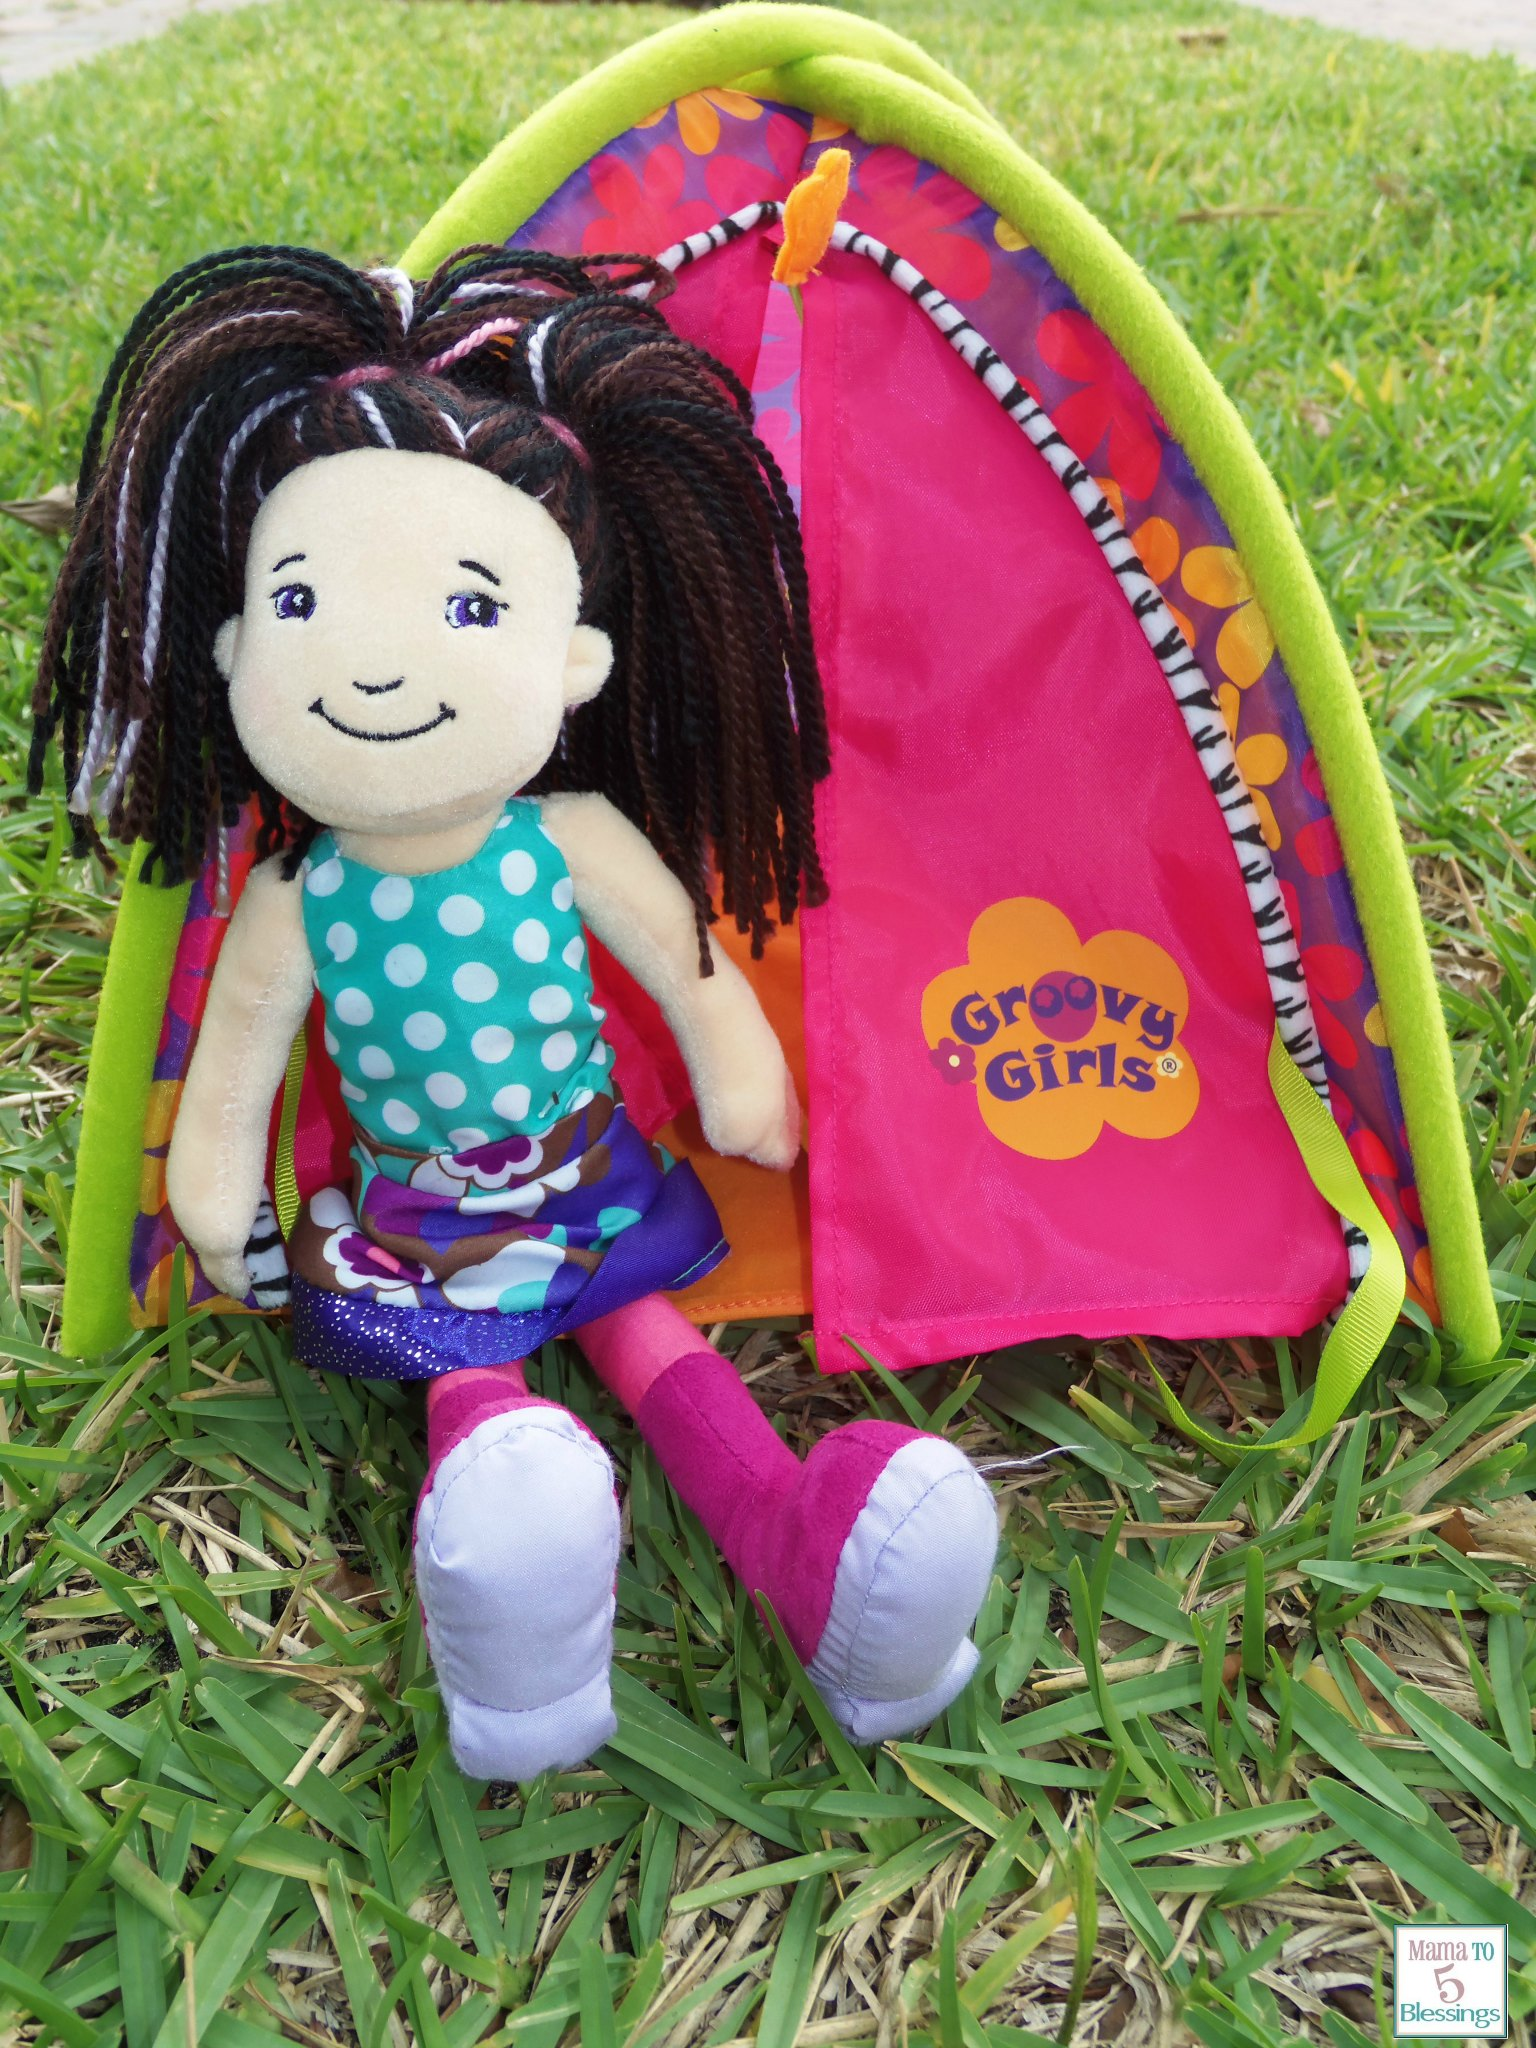 groovy girl bayani & Groovy Girls Dolls Along With Totally Tentastic